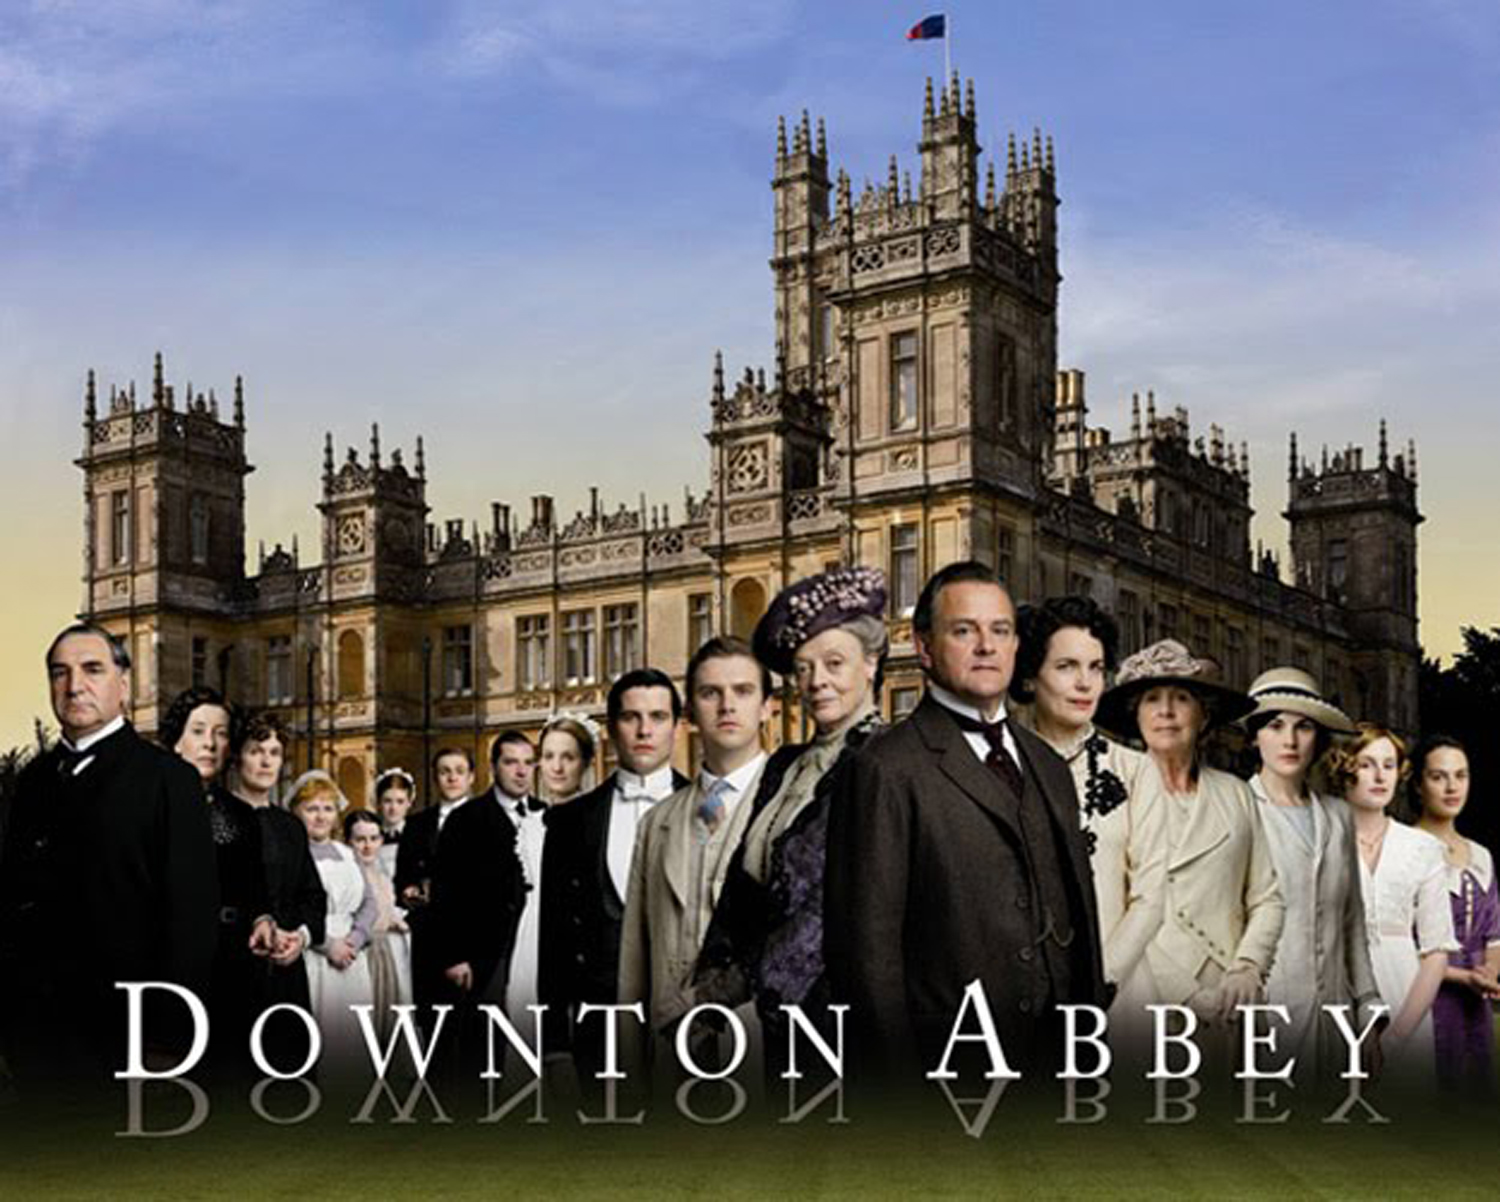 https://i0.wp.com/cdn.phillymag.com/wp-content/uploads/2013/02/DowntonAbbey1.jpg